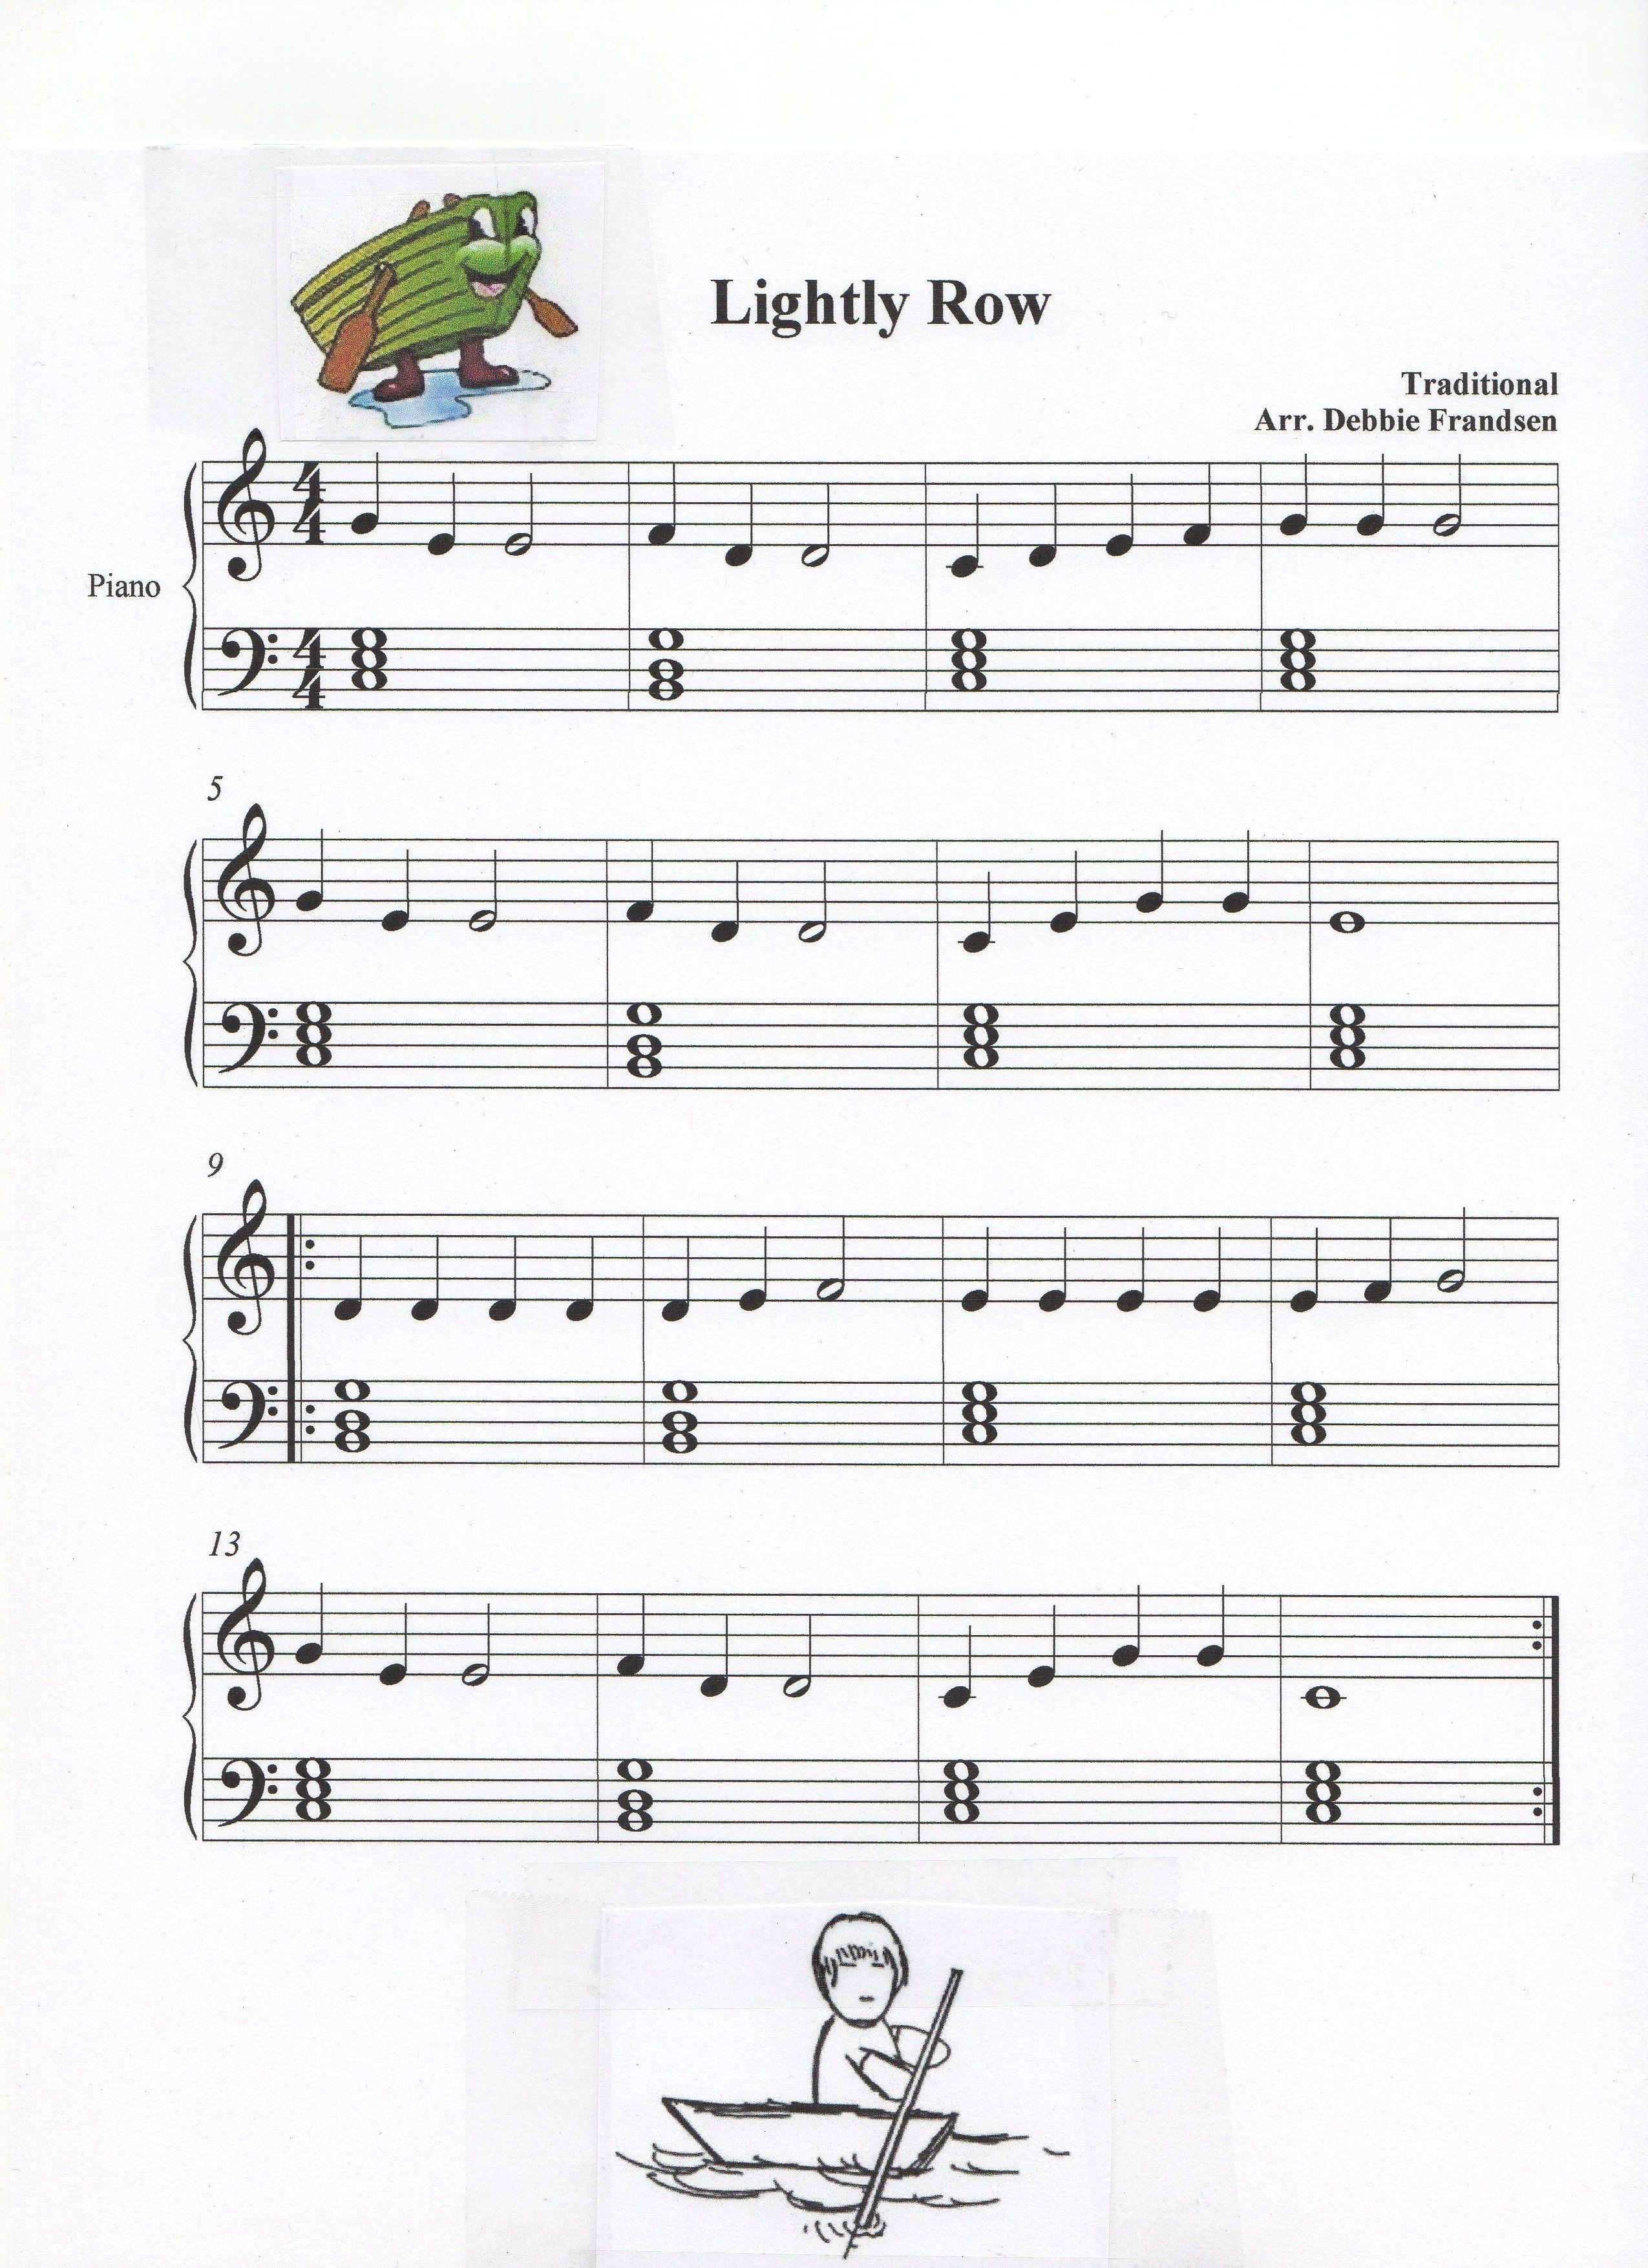 Lightly Row With Basic Block Chords For Let S Play Music And Piano